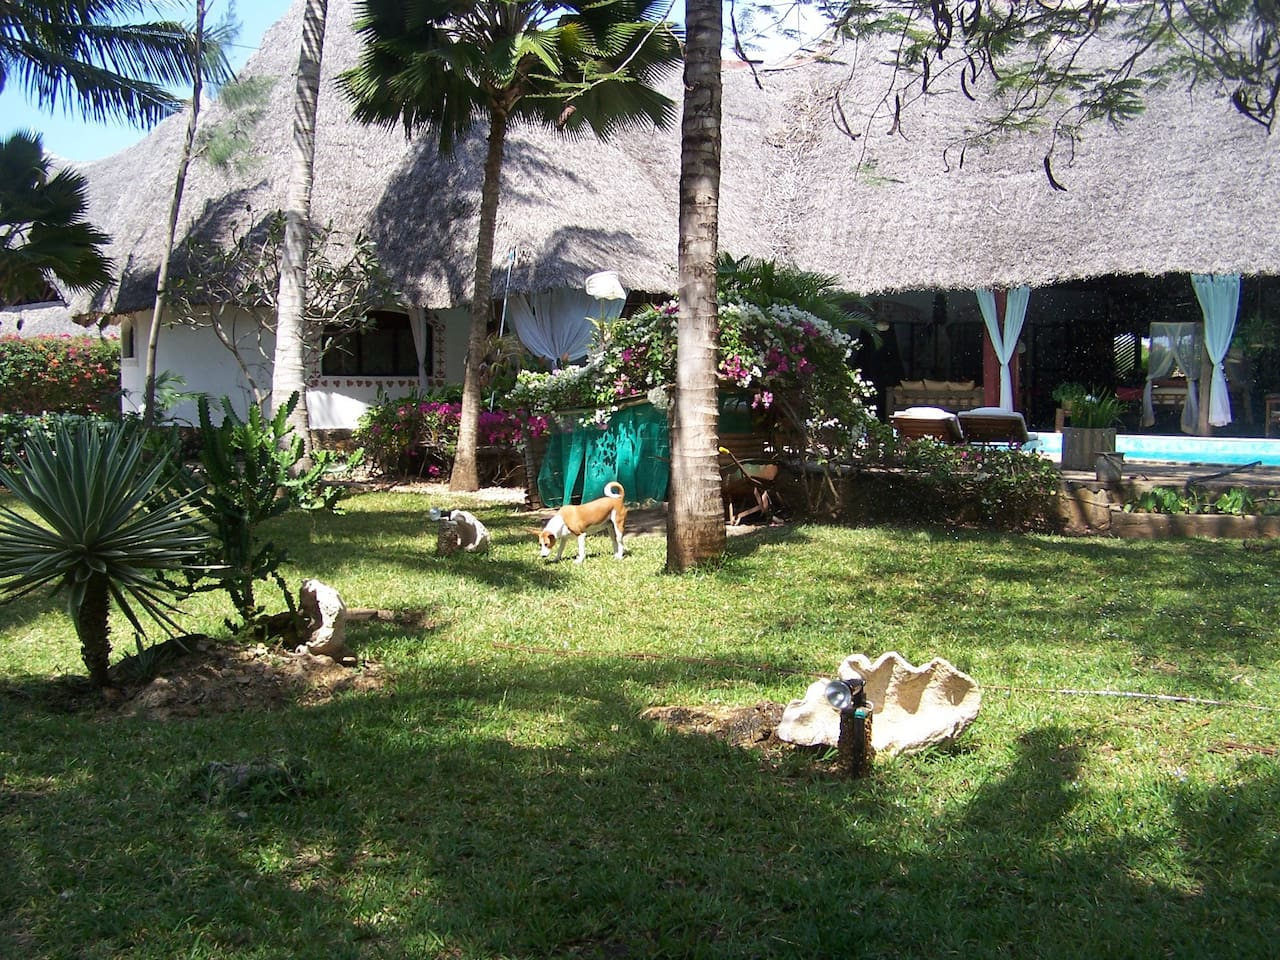 4 Bedrooms House for sale in Diani